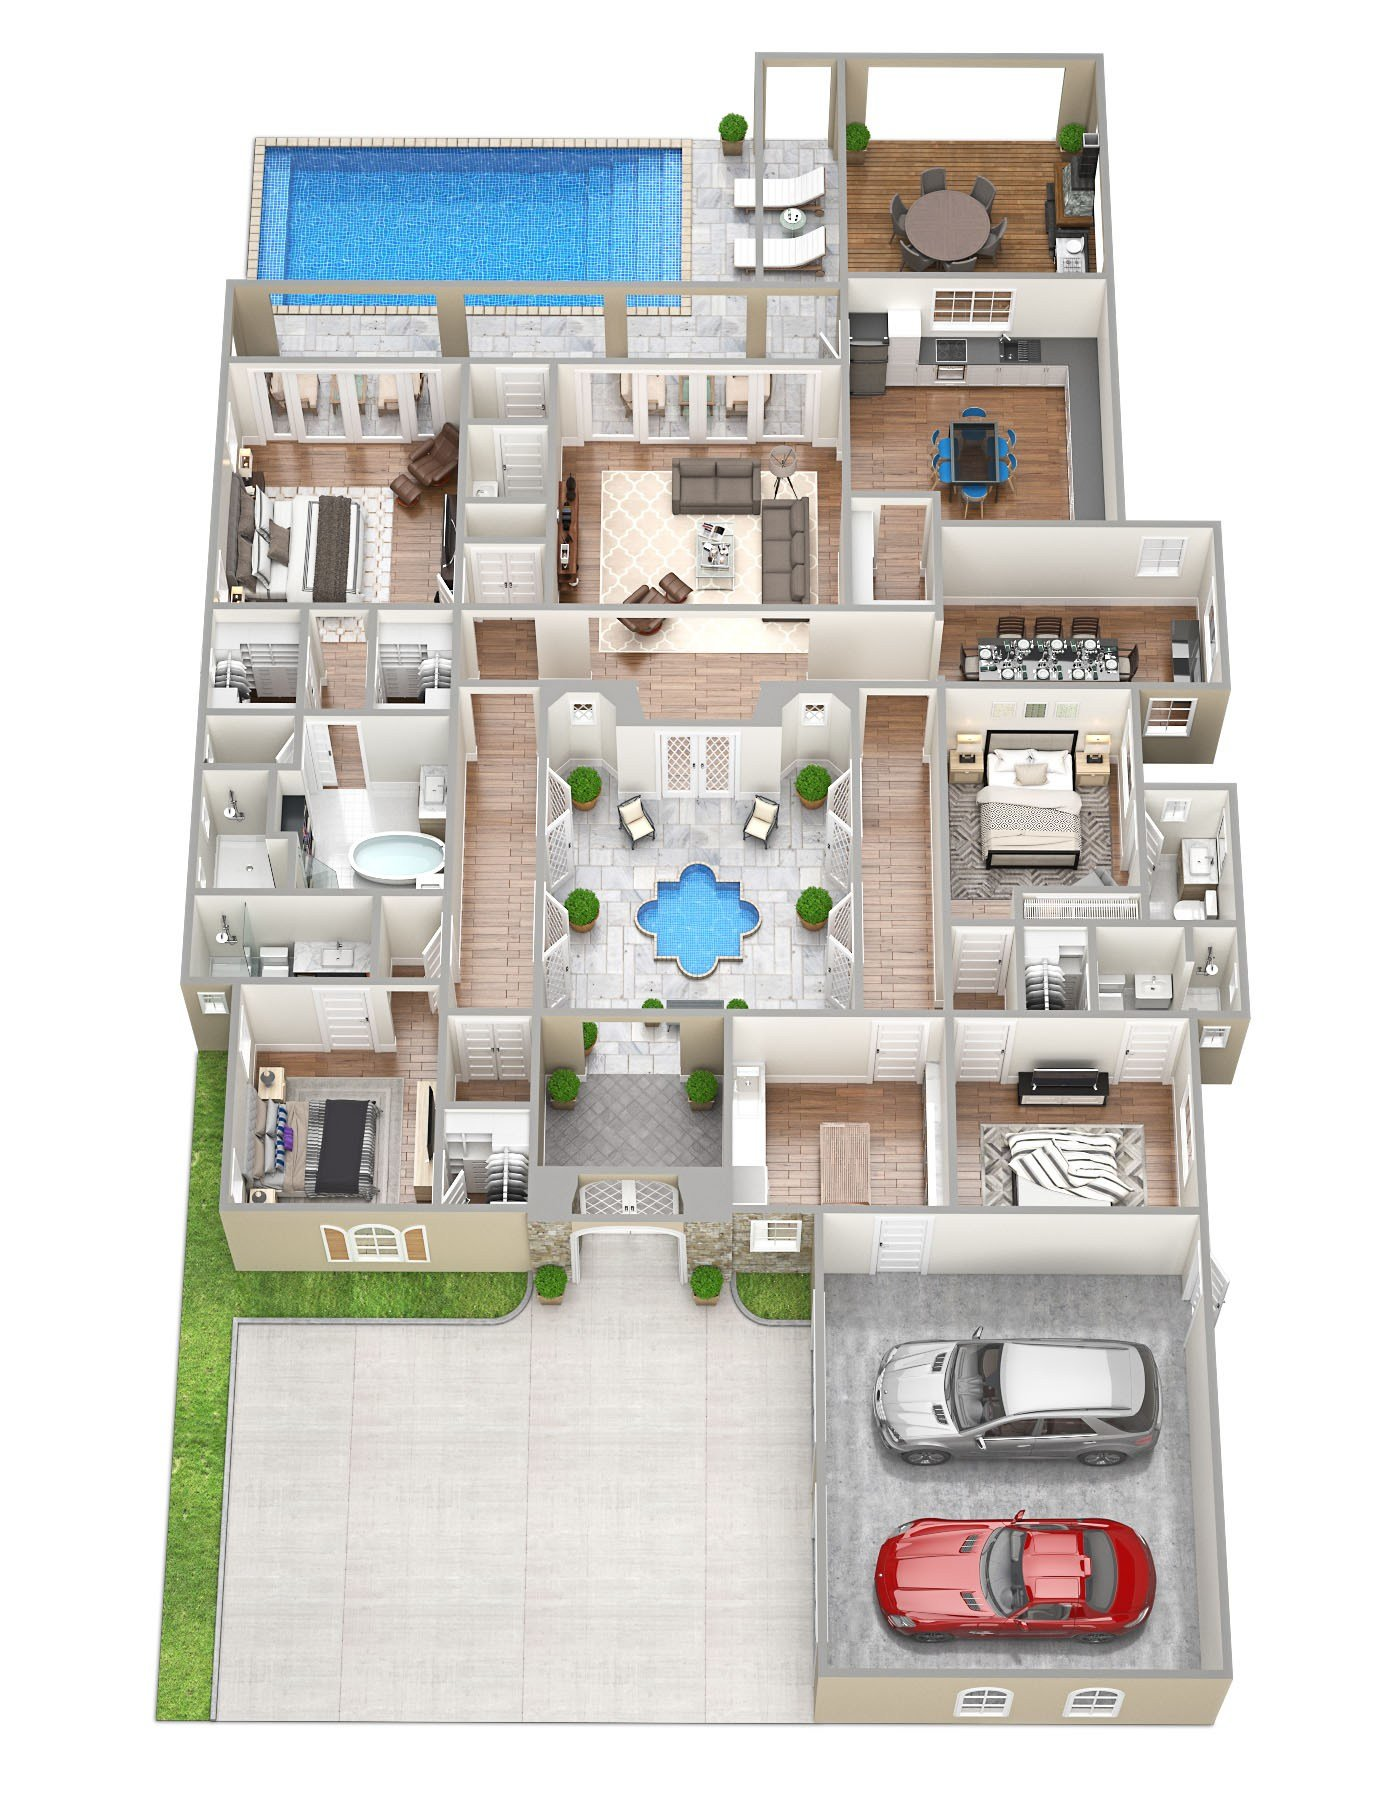 Best 3D Floorplans For The Sawyer Sound Property Tsymbals Design With Pictures